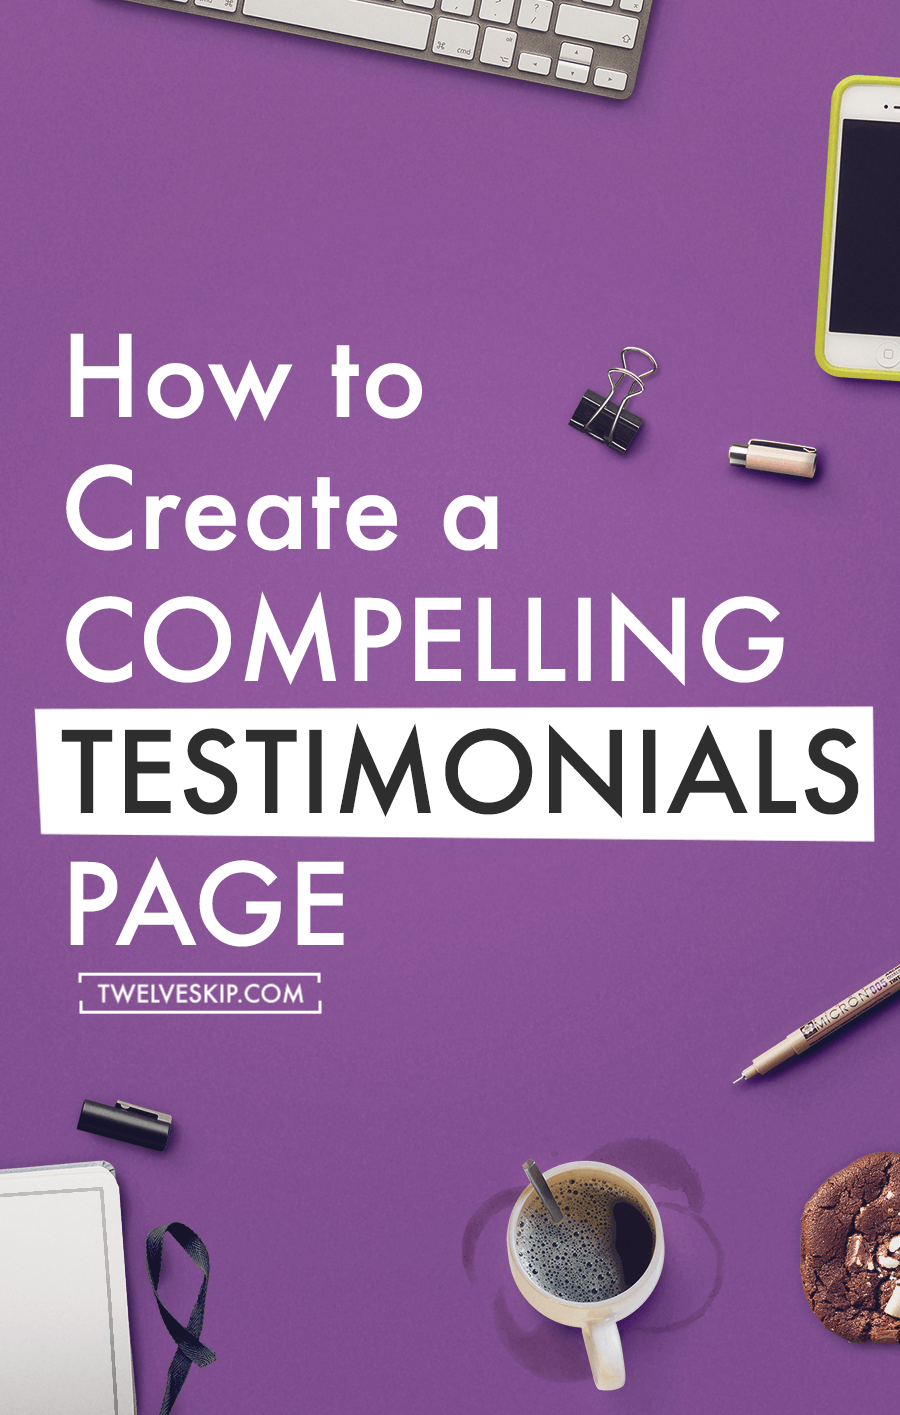 How To Create A Compelling Testimonials Page